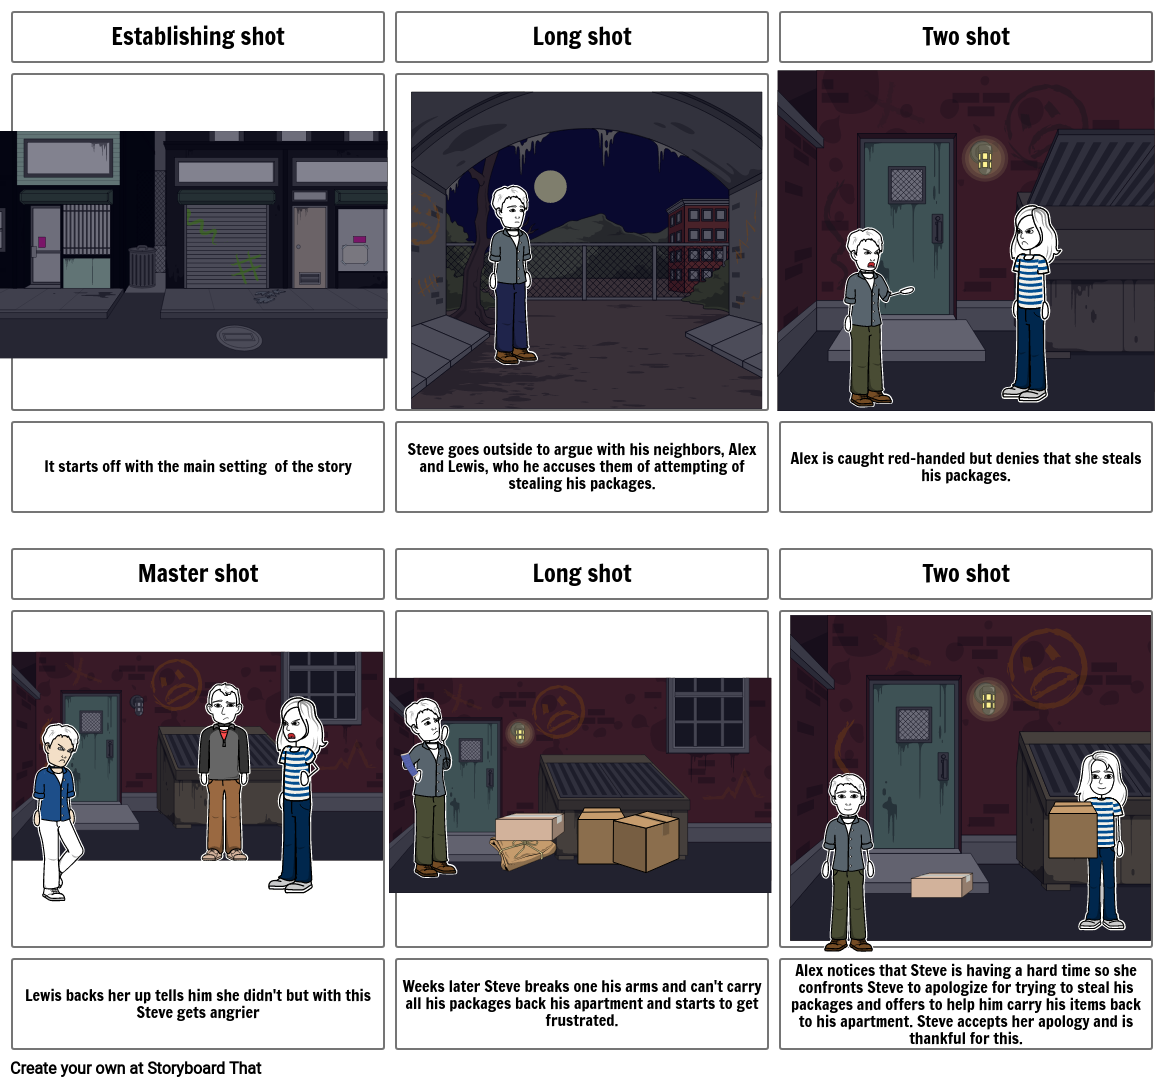 Video Project Storyboard